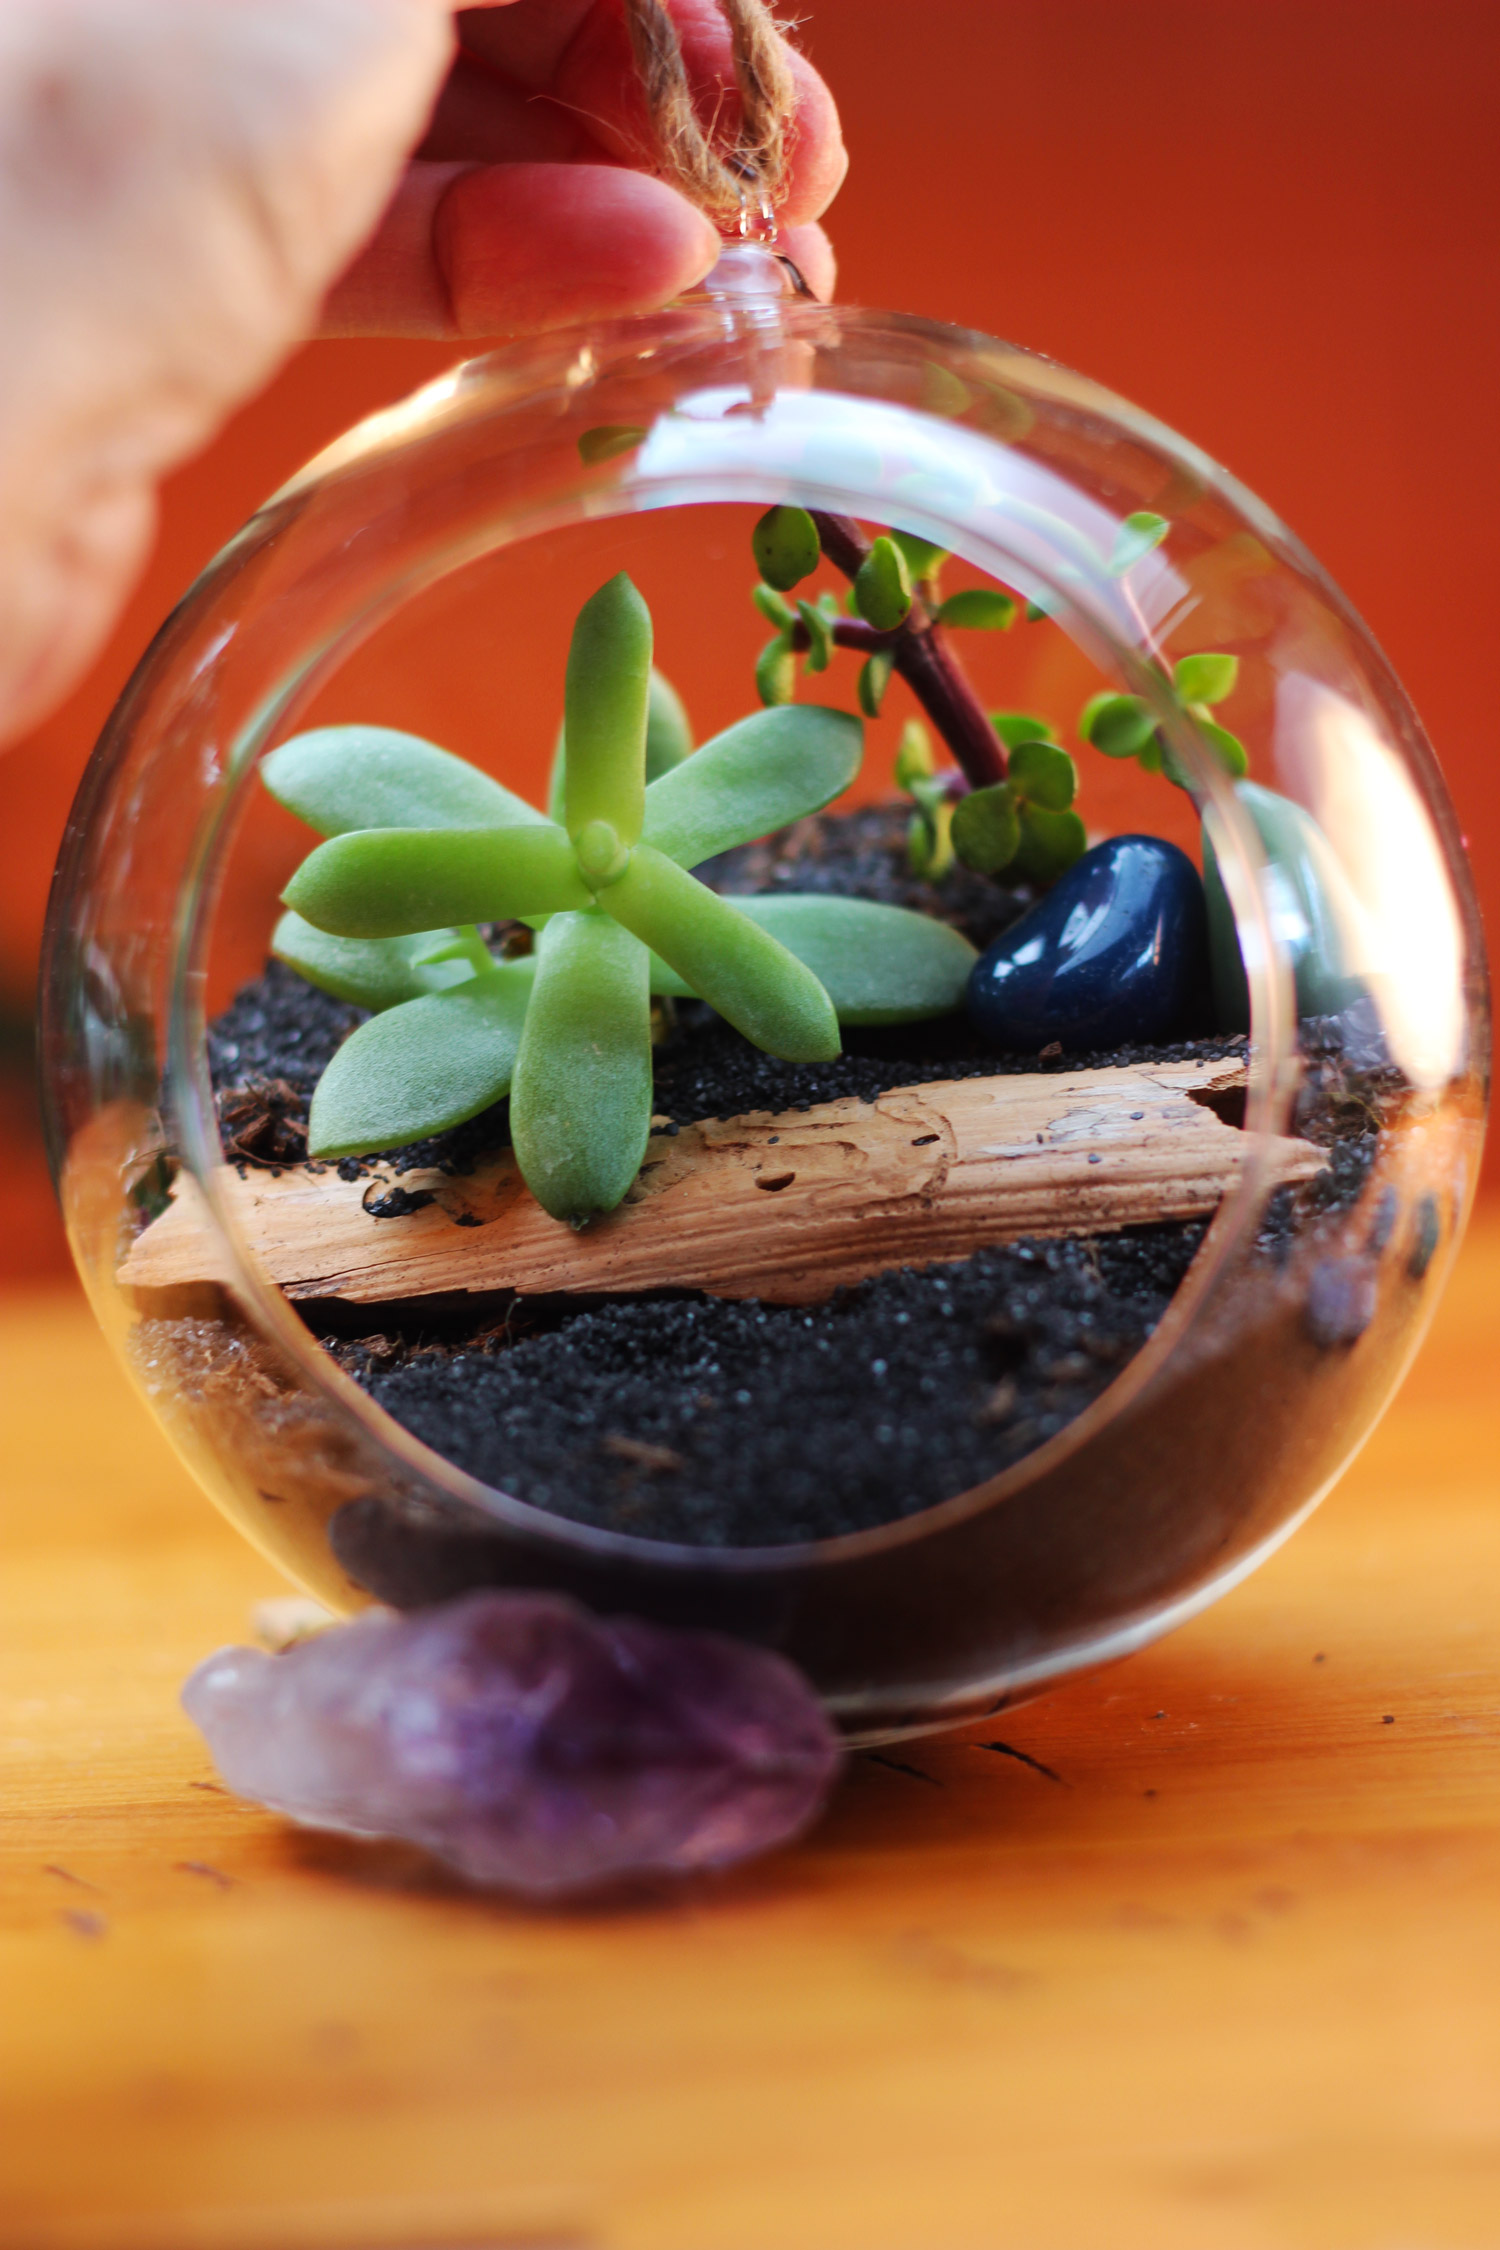 Next, plant 2 vertical succulents and put in a couple colored polished stones.